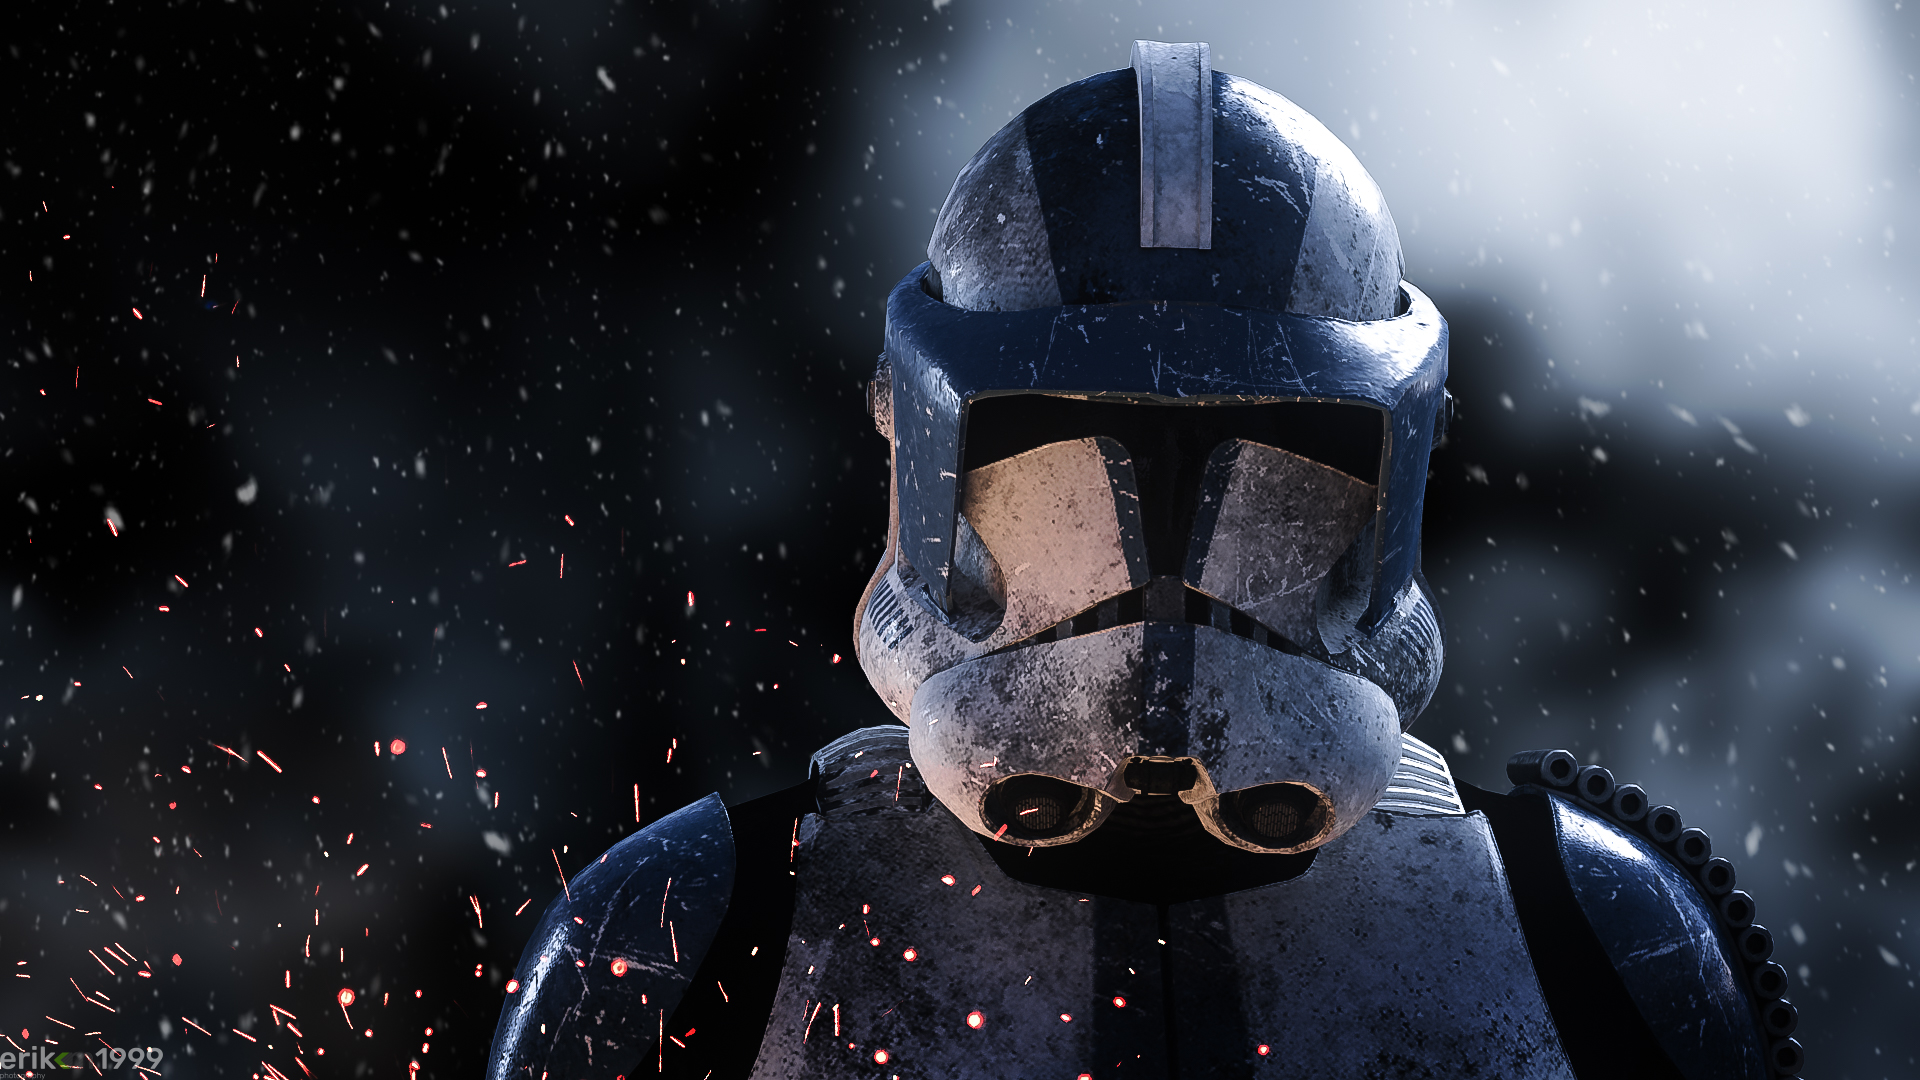 Stormtrooper Wallpaper 4k posted by Ryan Cunningham